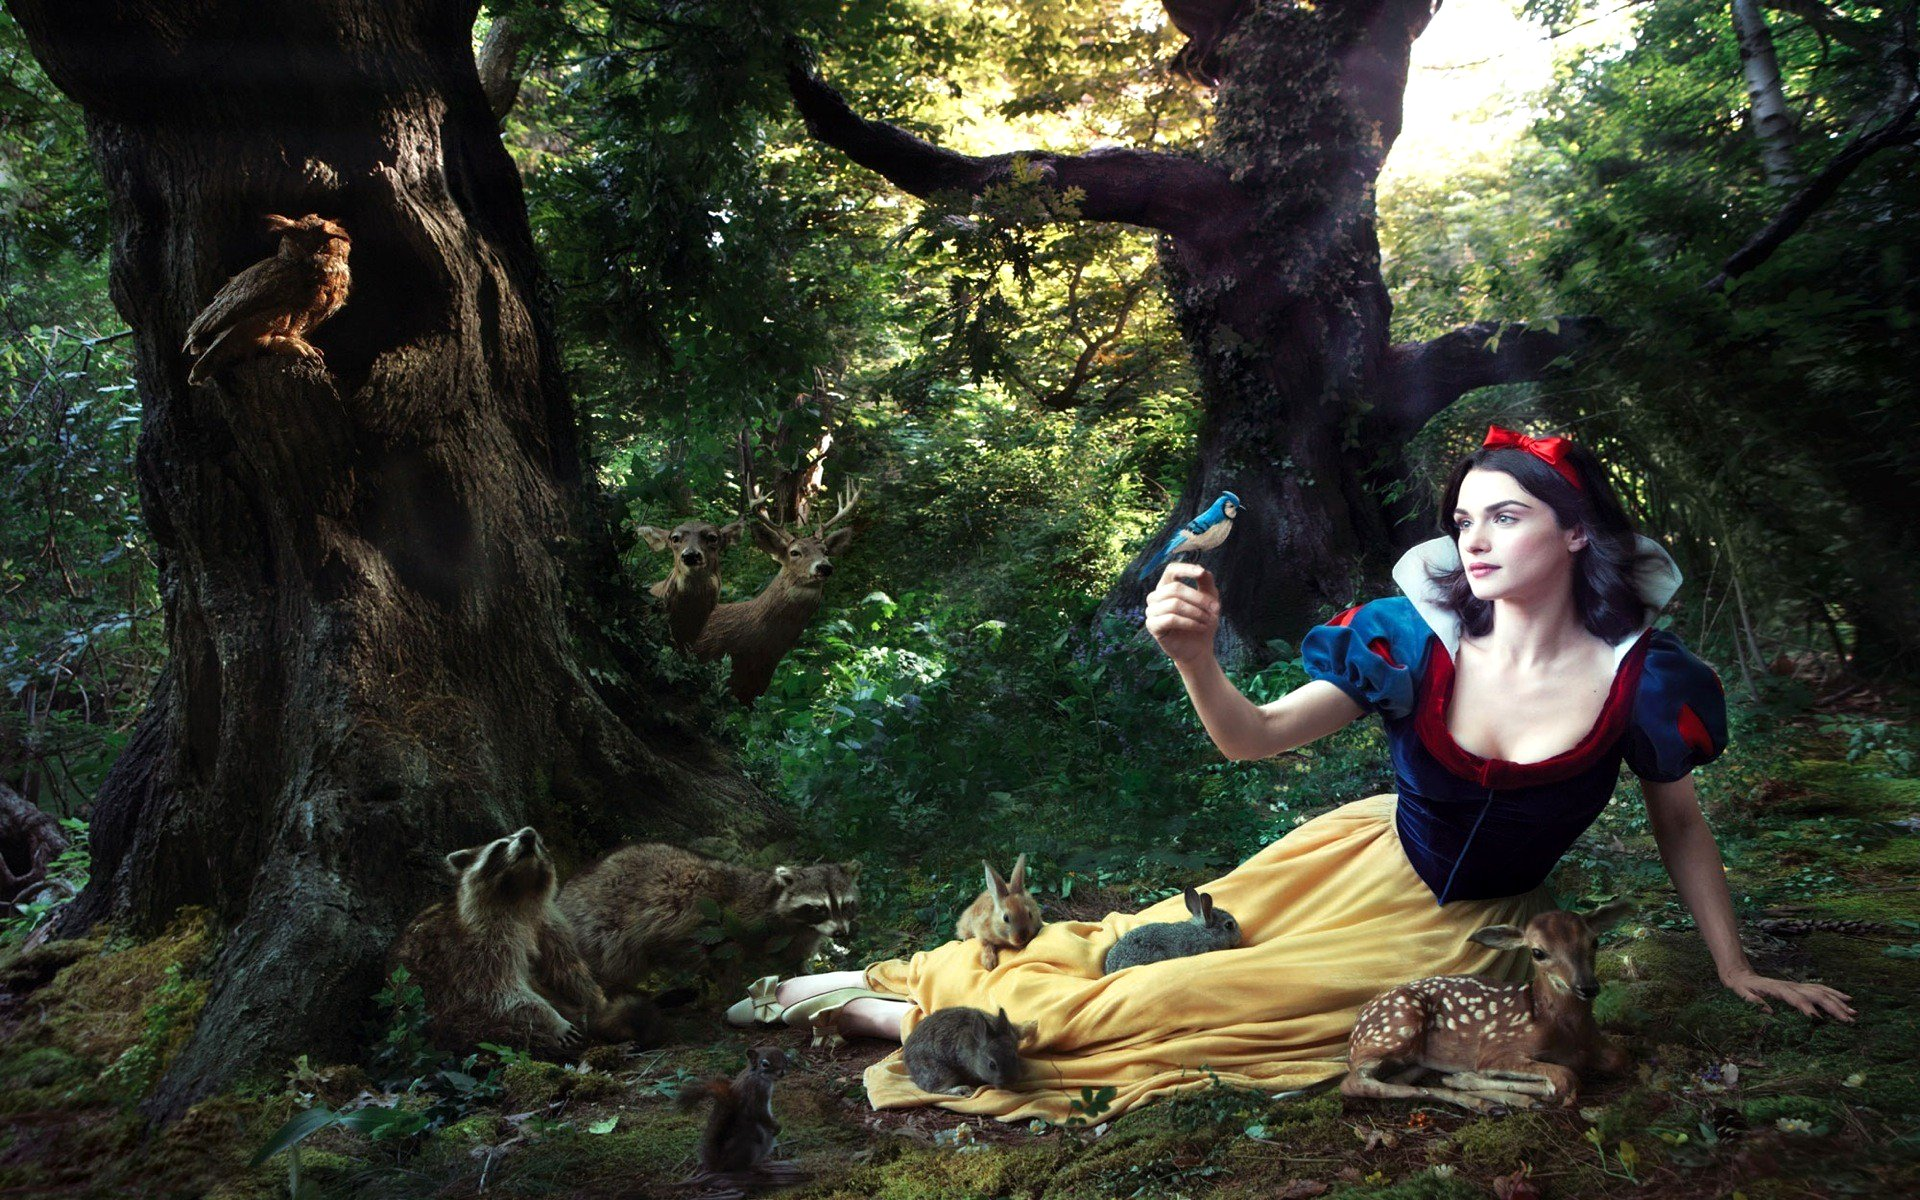 Snow White Wallpaper Google image from onlyhdwallpapers.com